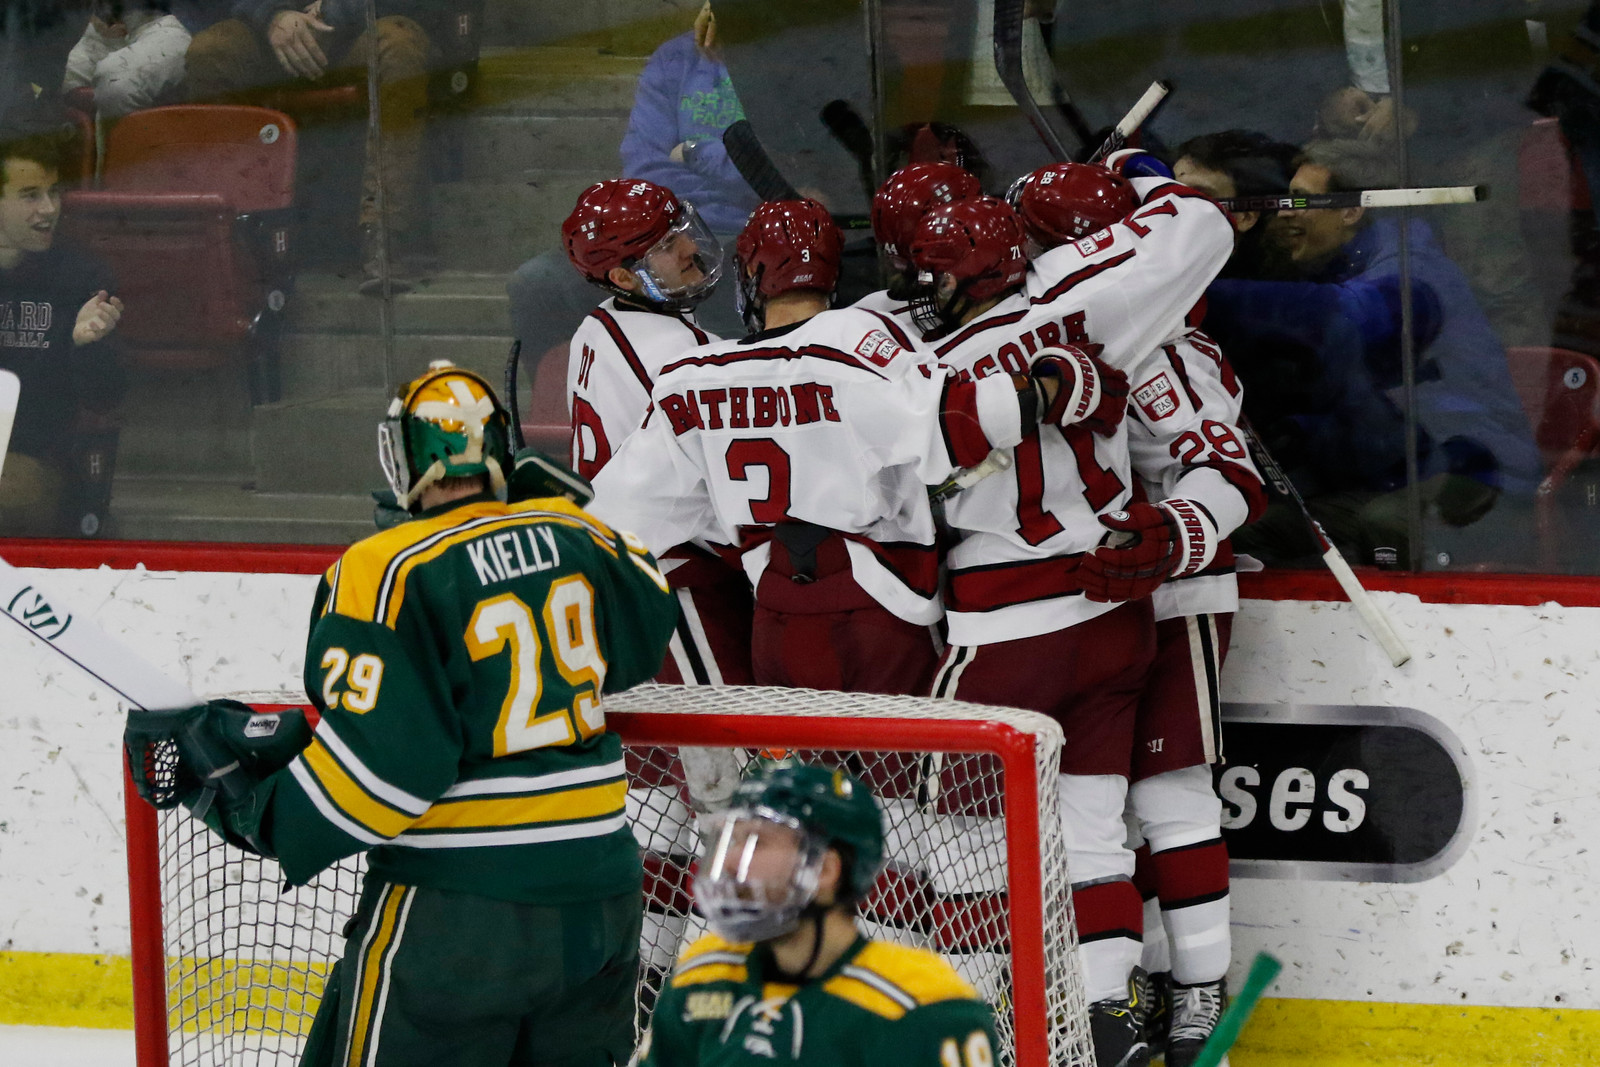 The Crimson may benefit from the extra time and space allotted by the Olympic-sized ice sheet at Lake Placid's Herb Brooks Arena.